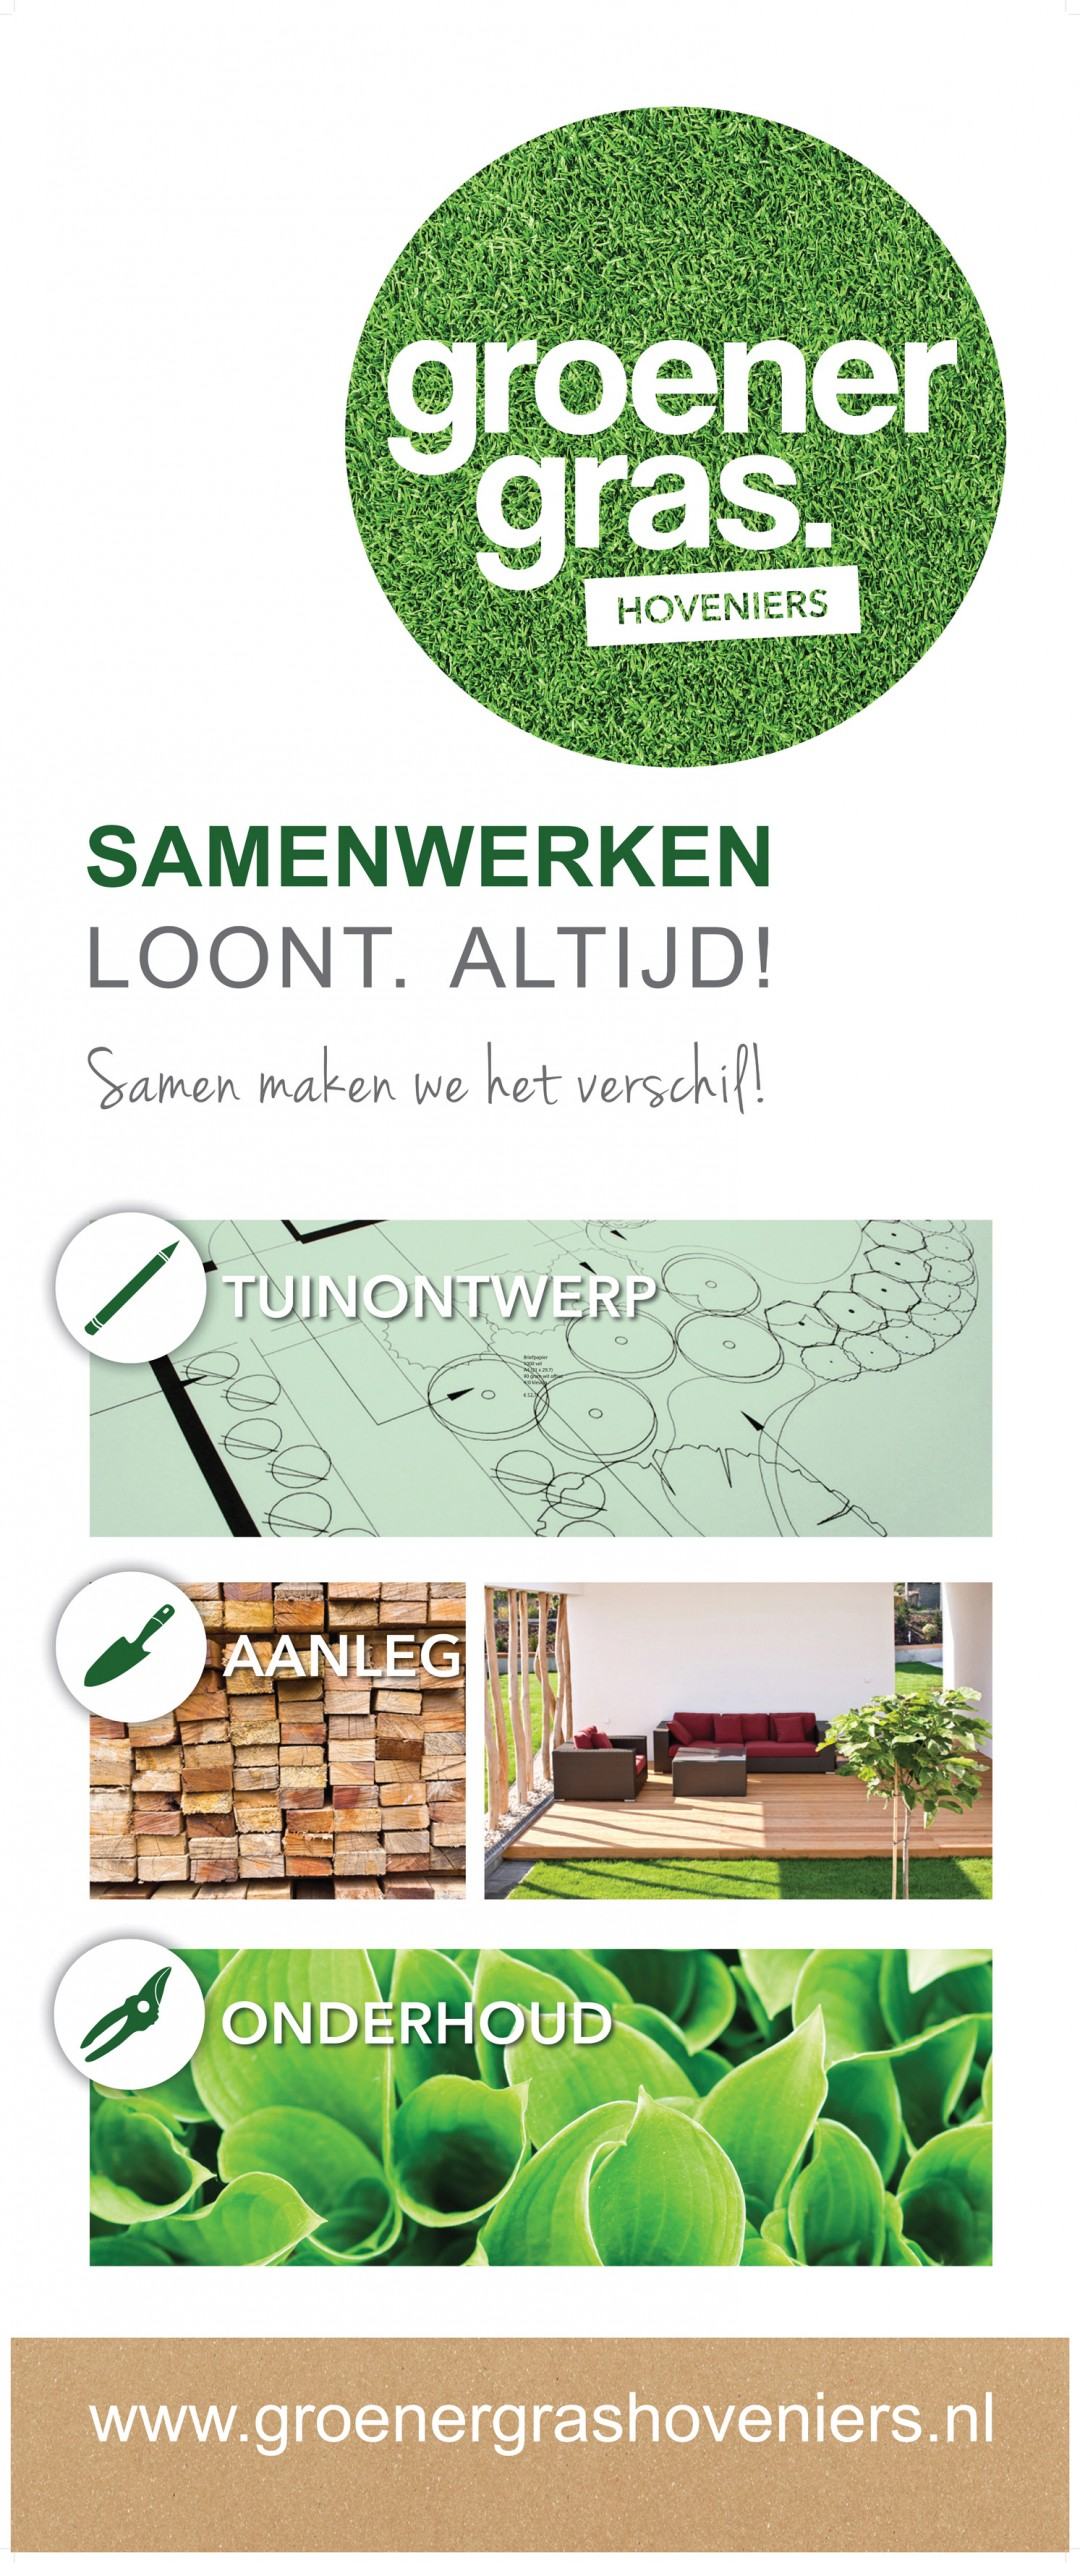 Roll up banner |                                  Groener Gras Hoveniers